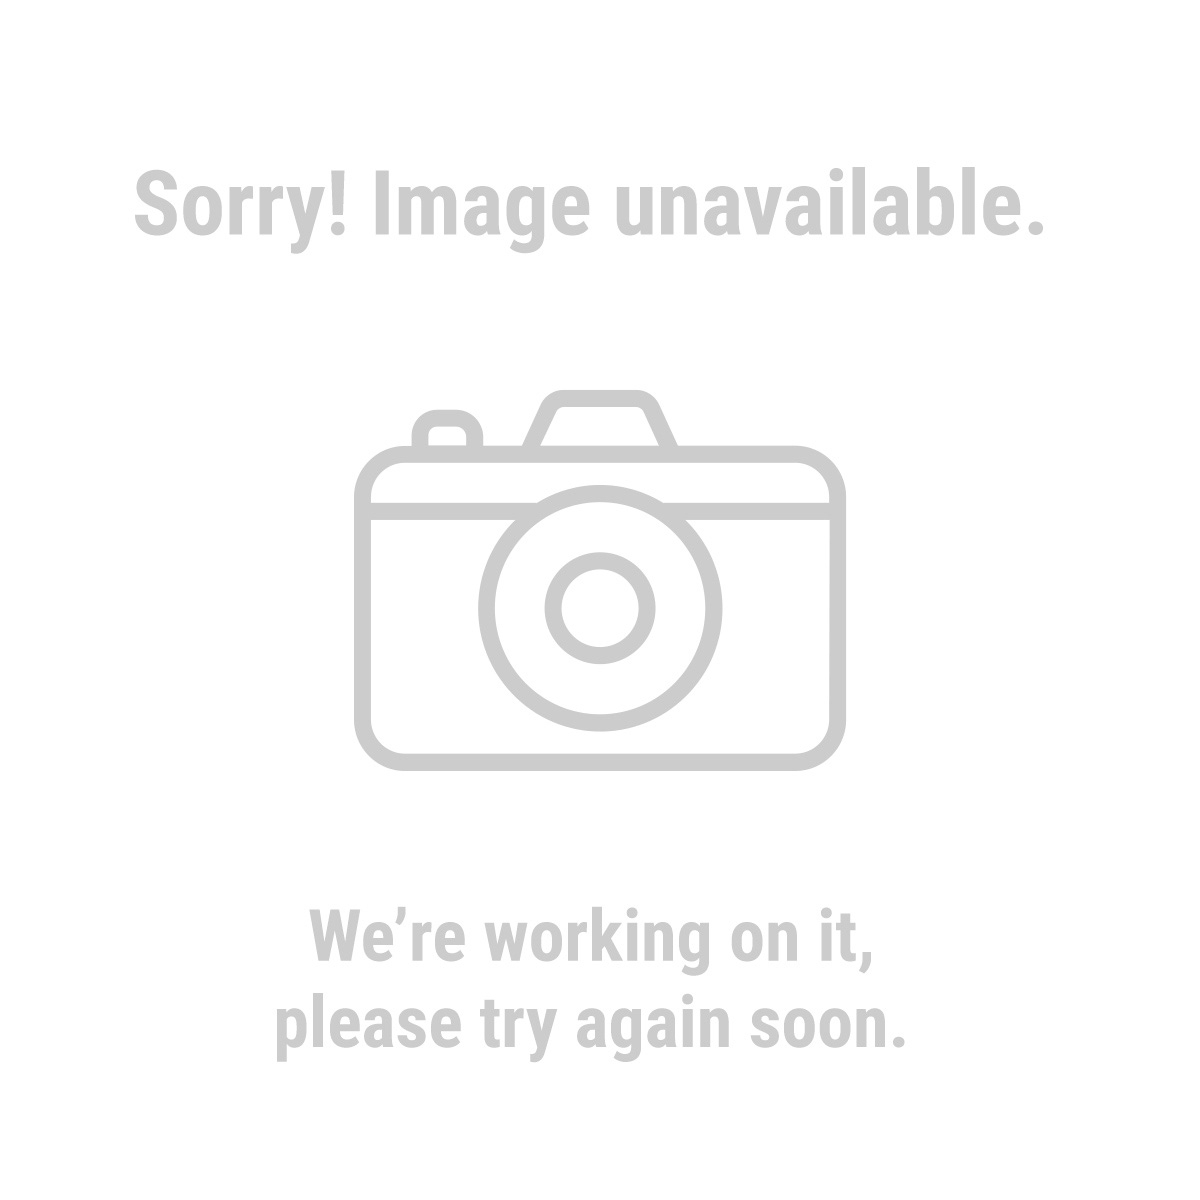 Chicago Electric Power Tools 62658 18 Volt 1/2 in. Cordless Variable Speed Impact Wrench